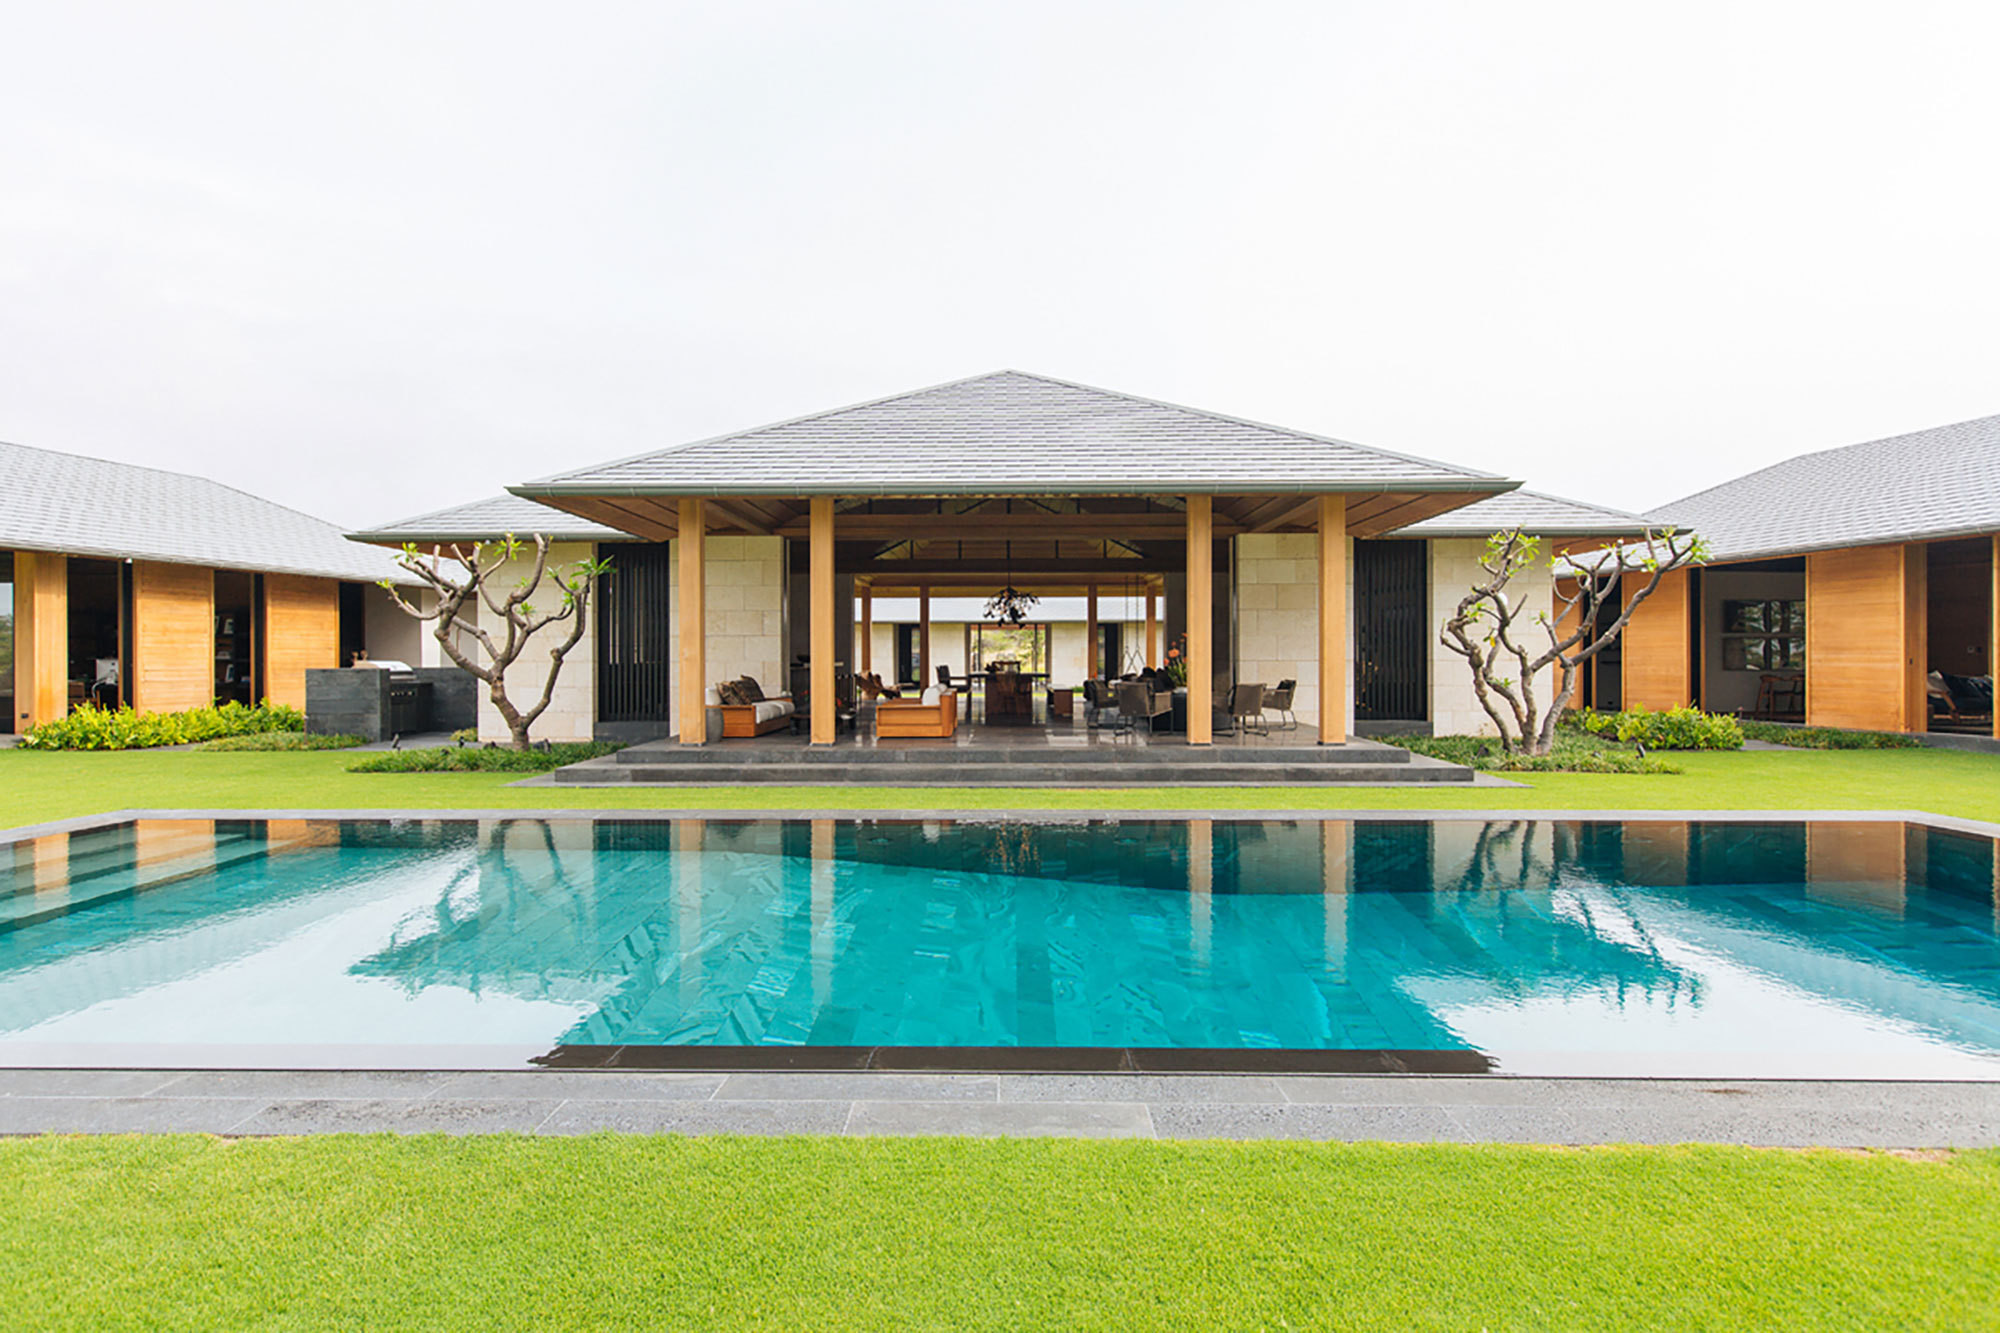 This Minimal Modern Hawaiian Home Is